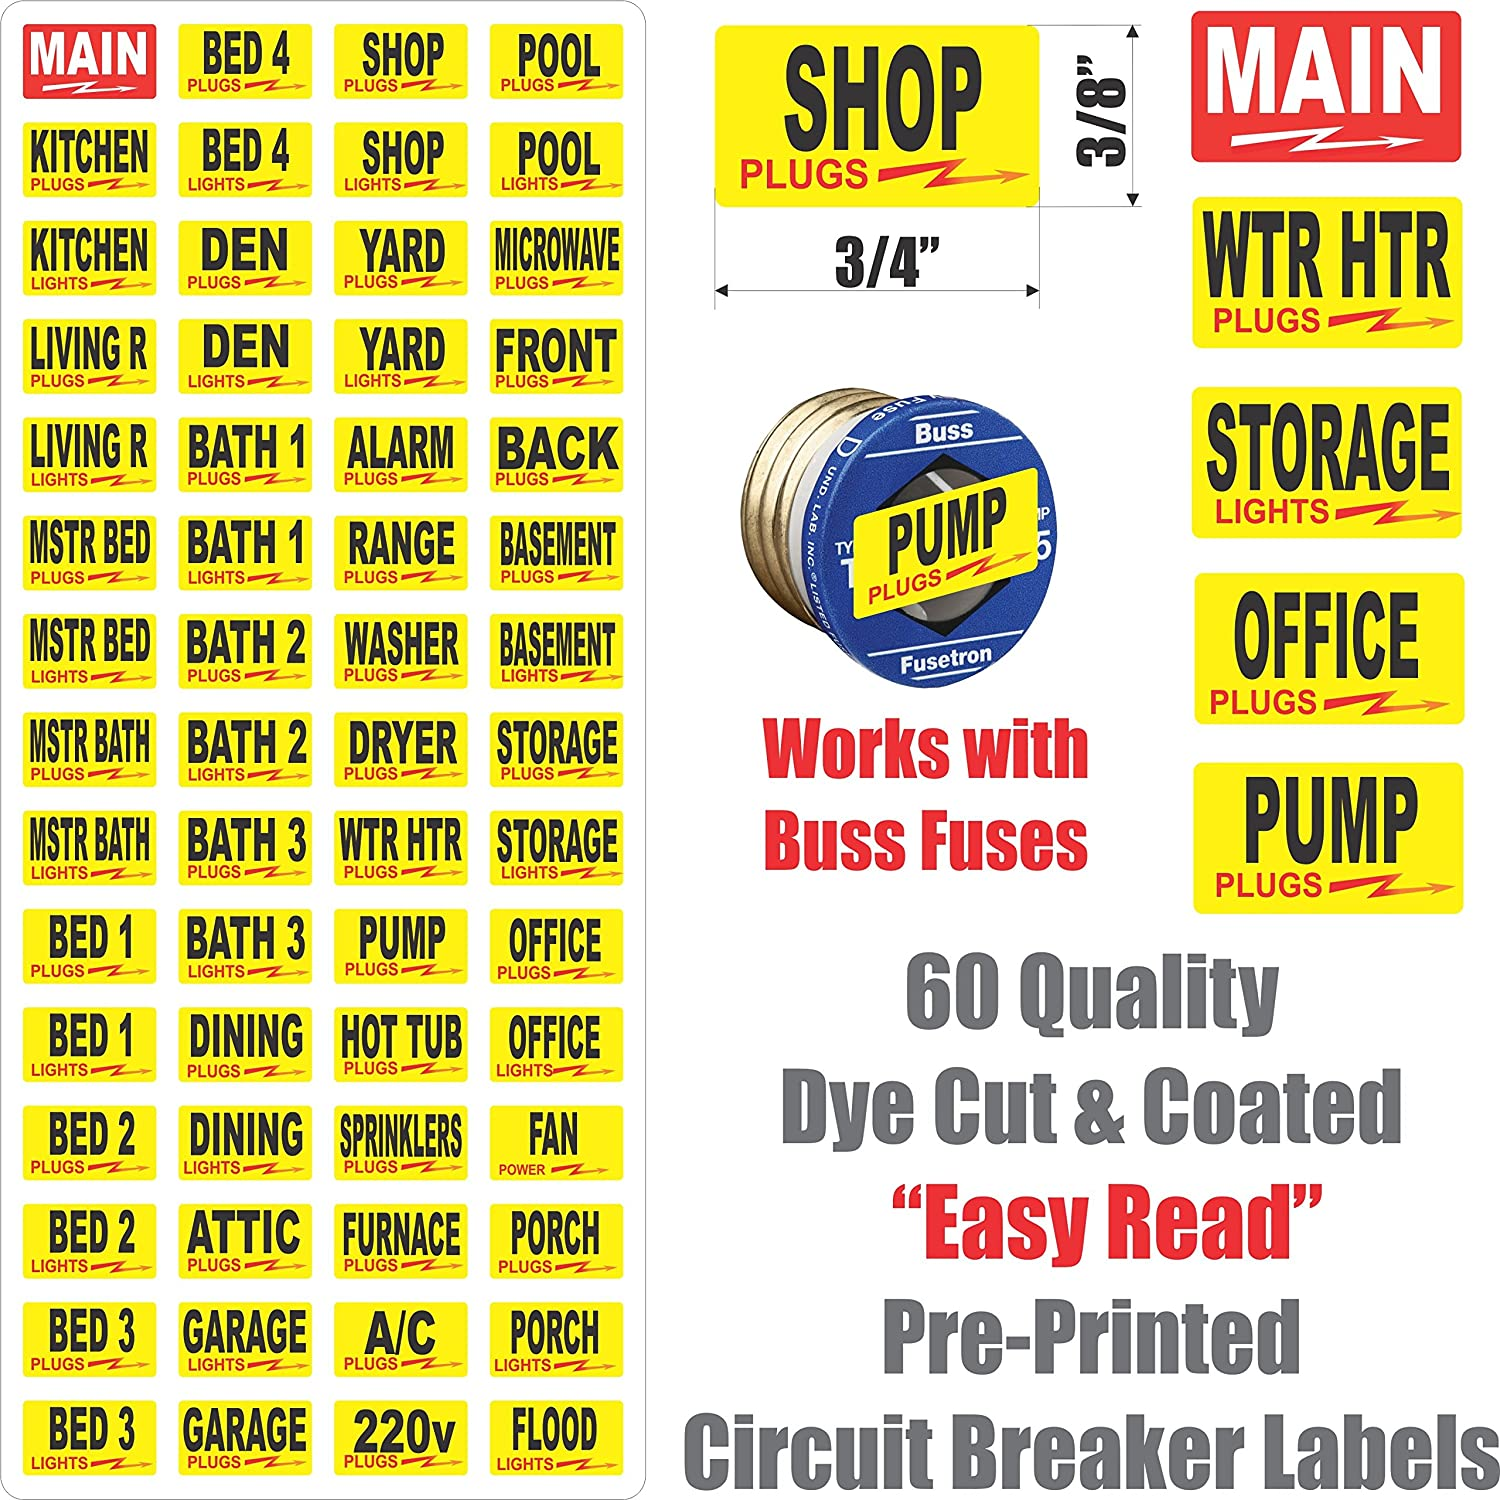 Circuit Breaker Decals 105 Tough Vinyl Labels For Split Bus Electrical Panels No Main Panel Boxes Great Home Or Office Apartment Complexes And Electricians